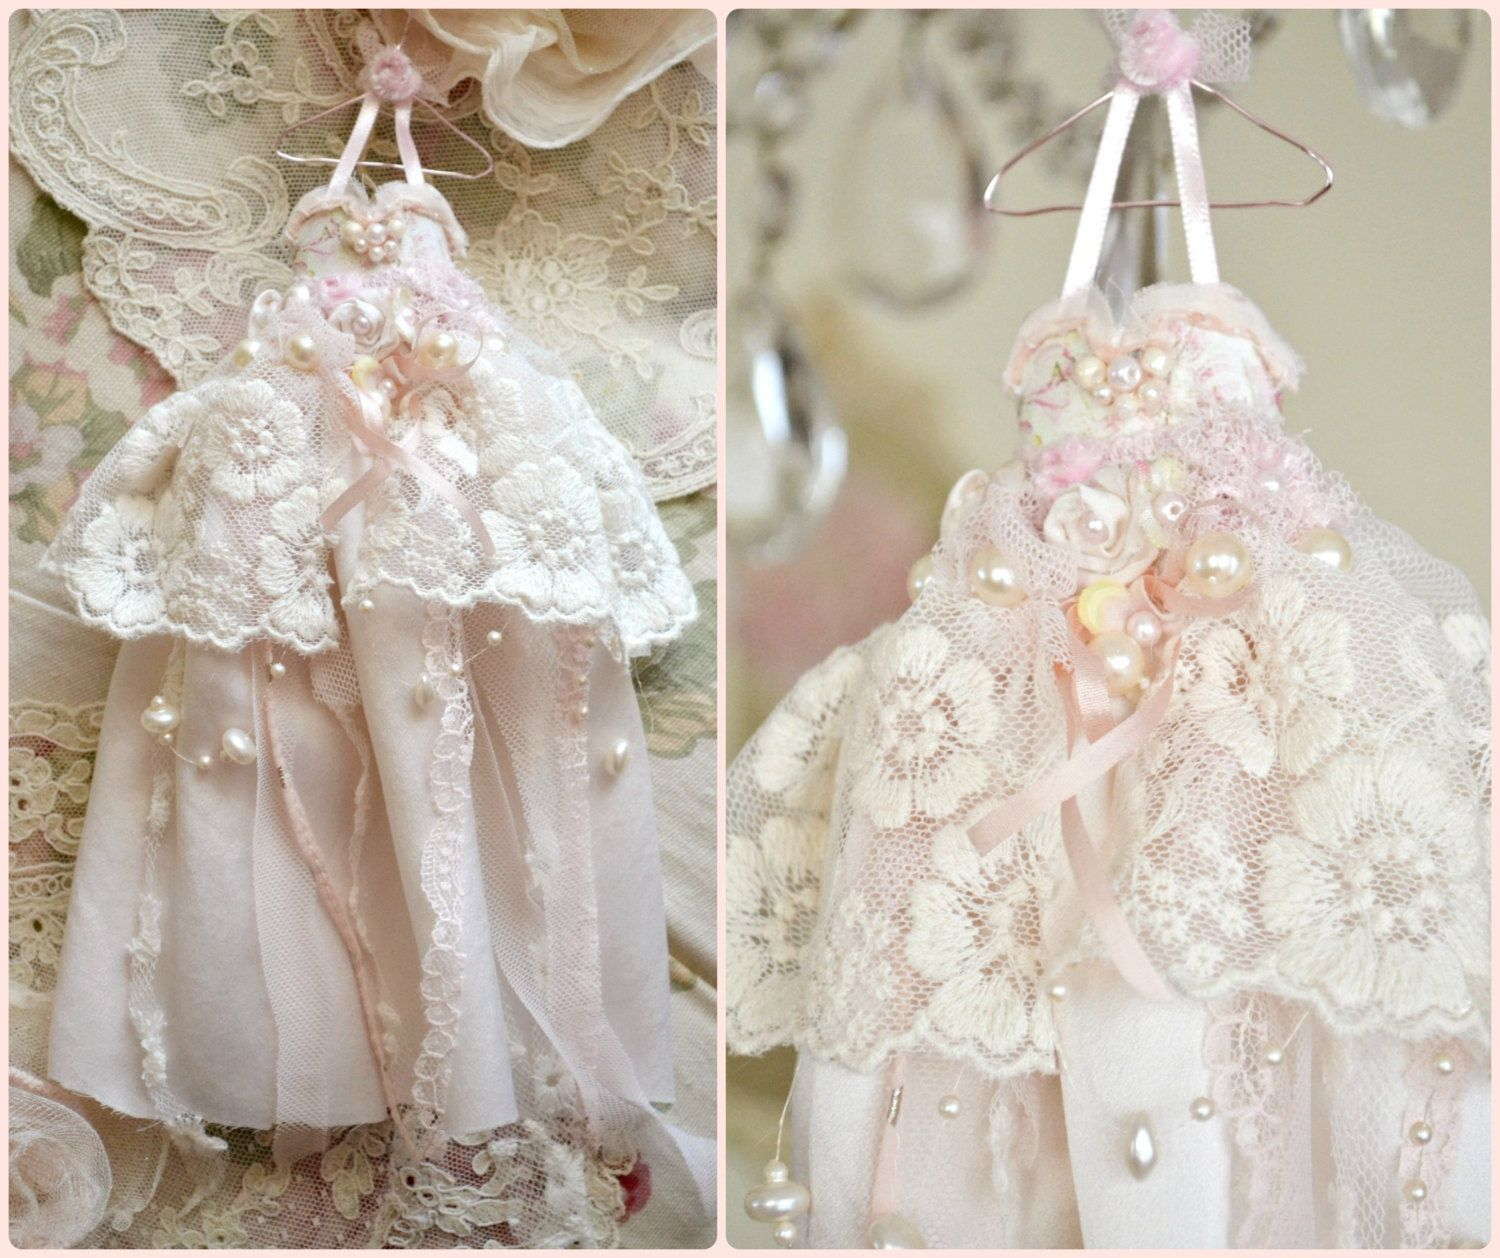 Hand made fairy bridal gown by Jennelise Rose.